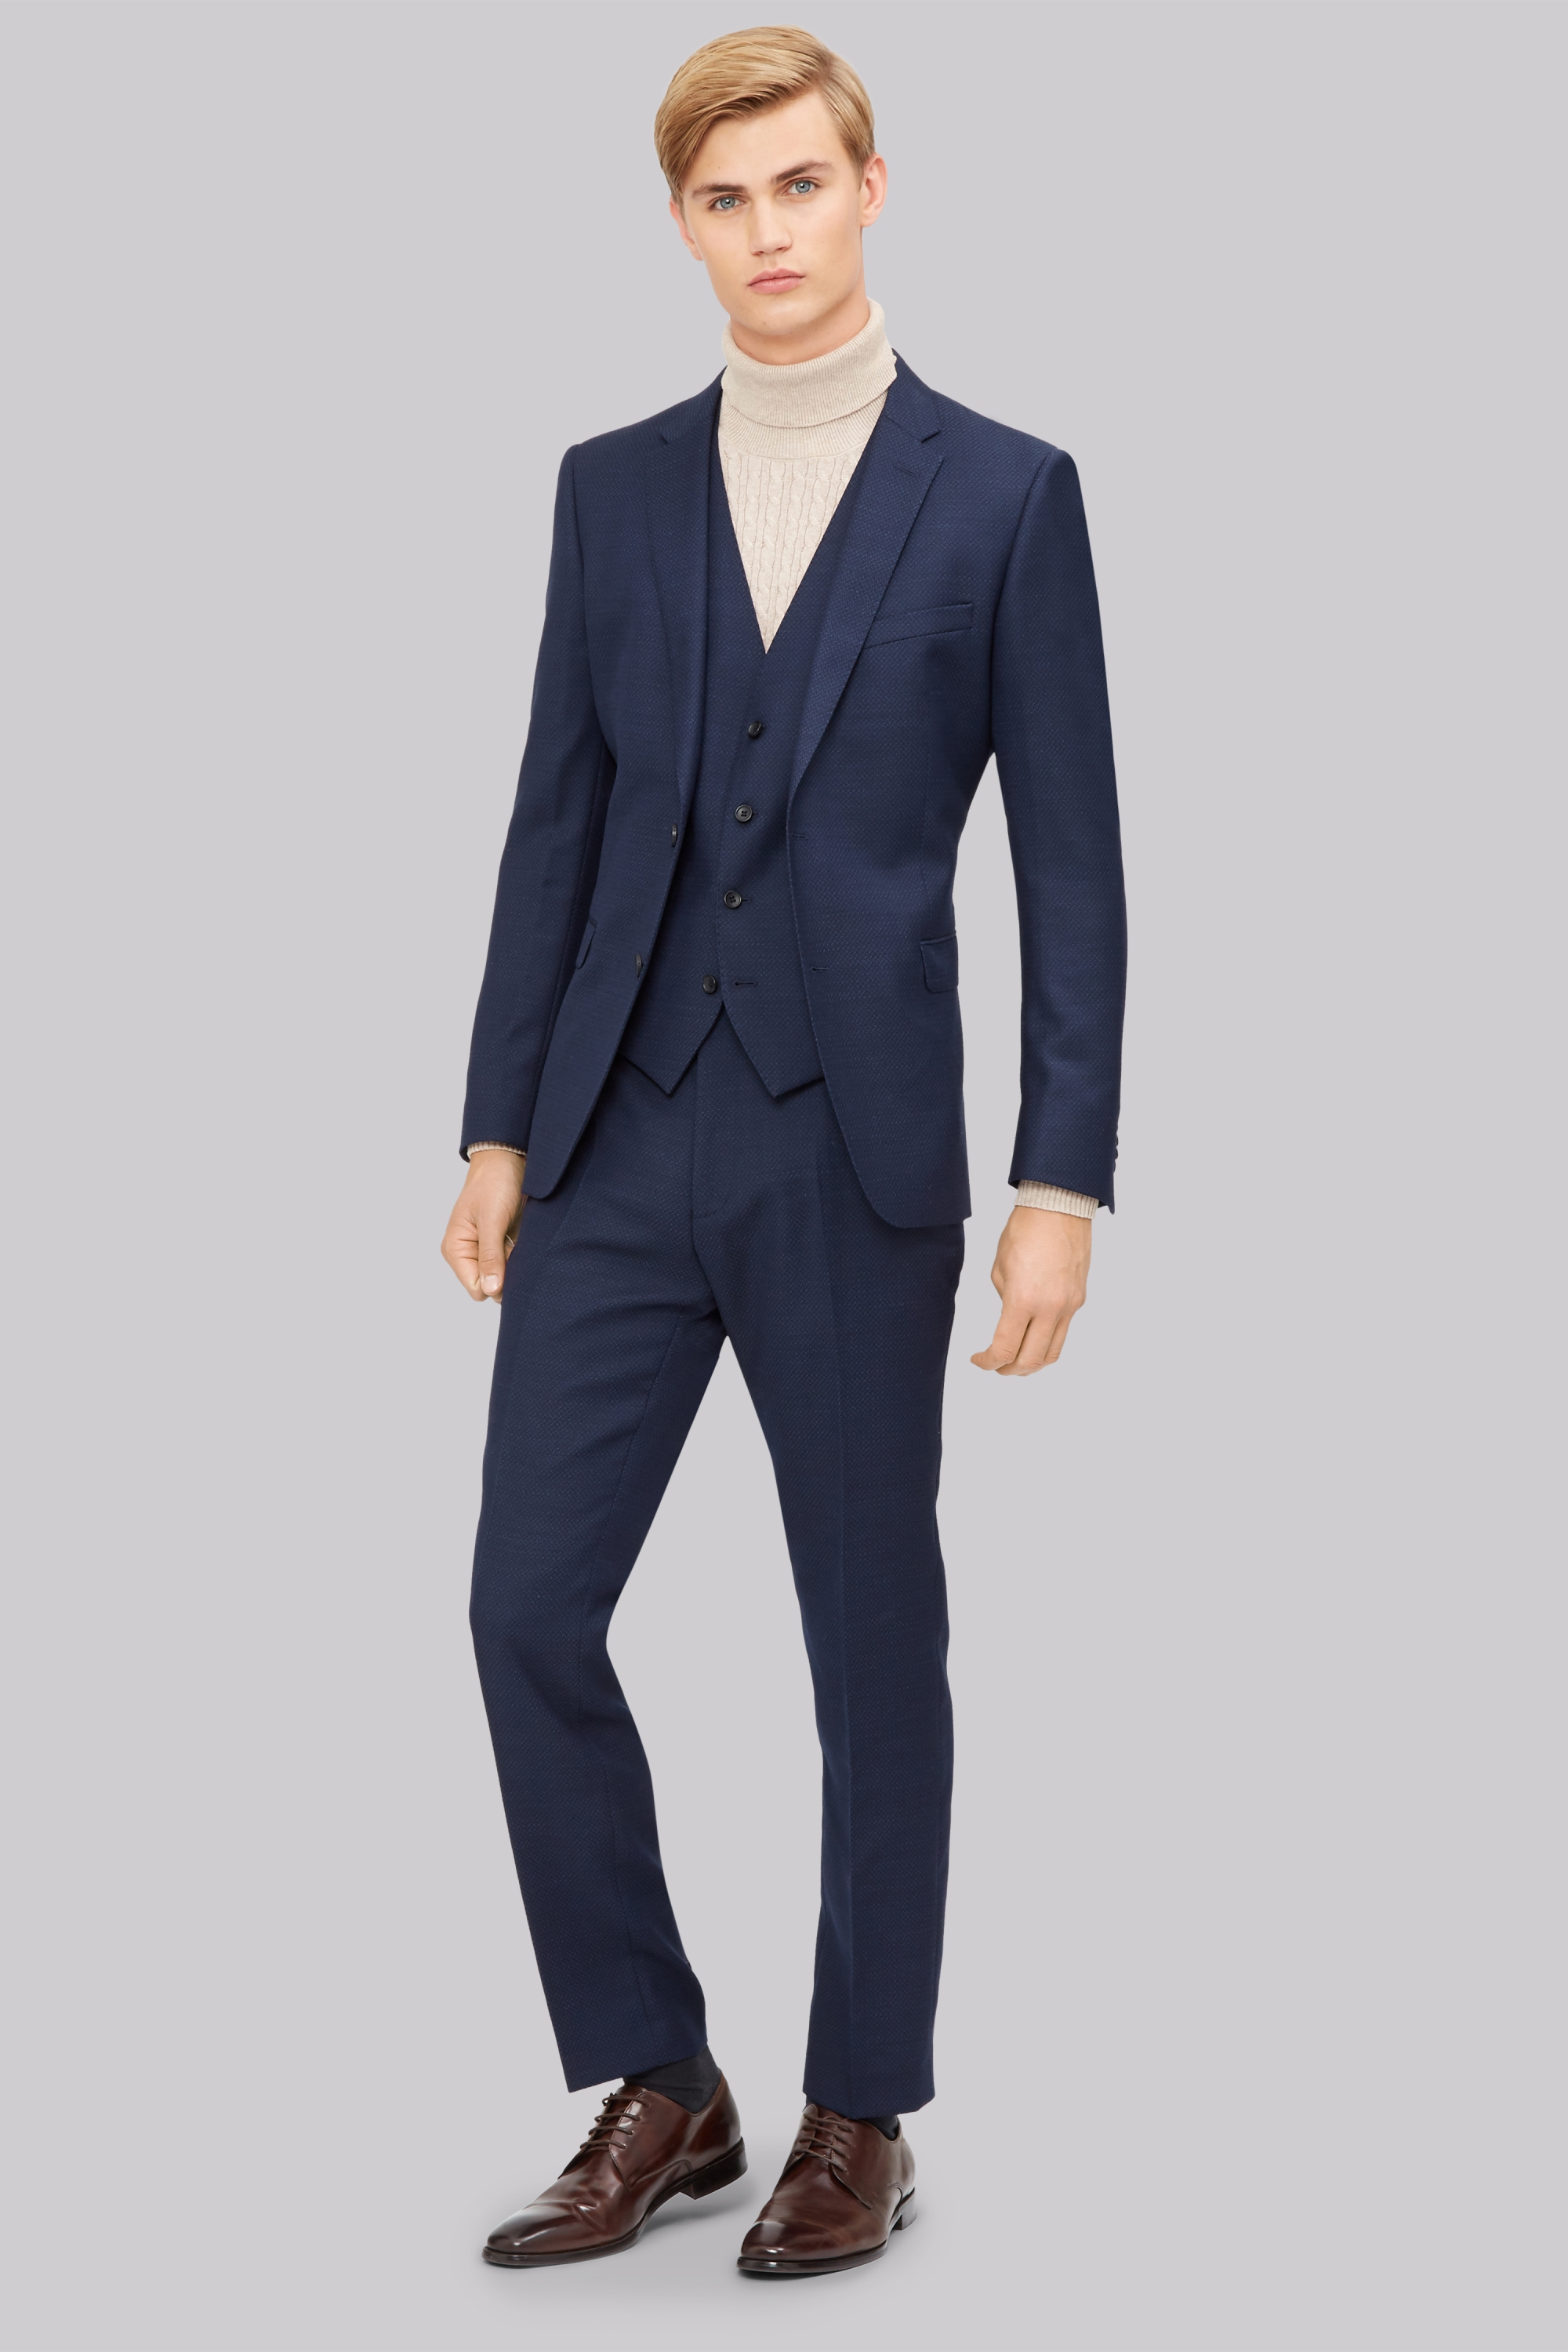 d970309bd5b French Connection Slim Fit Navy Jacquard Jacket